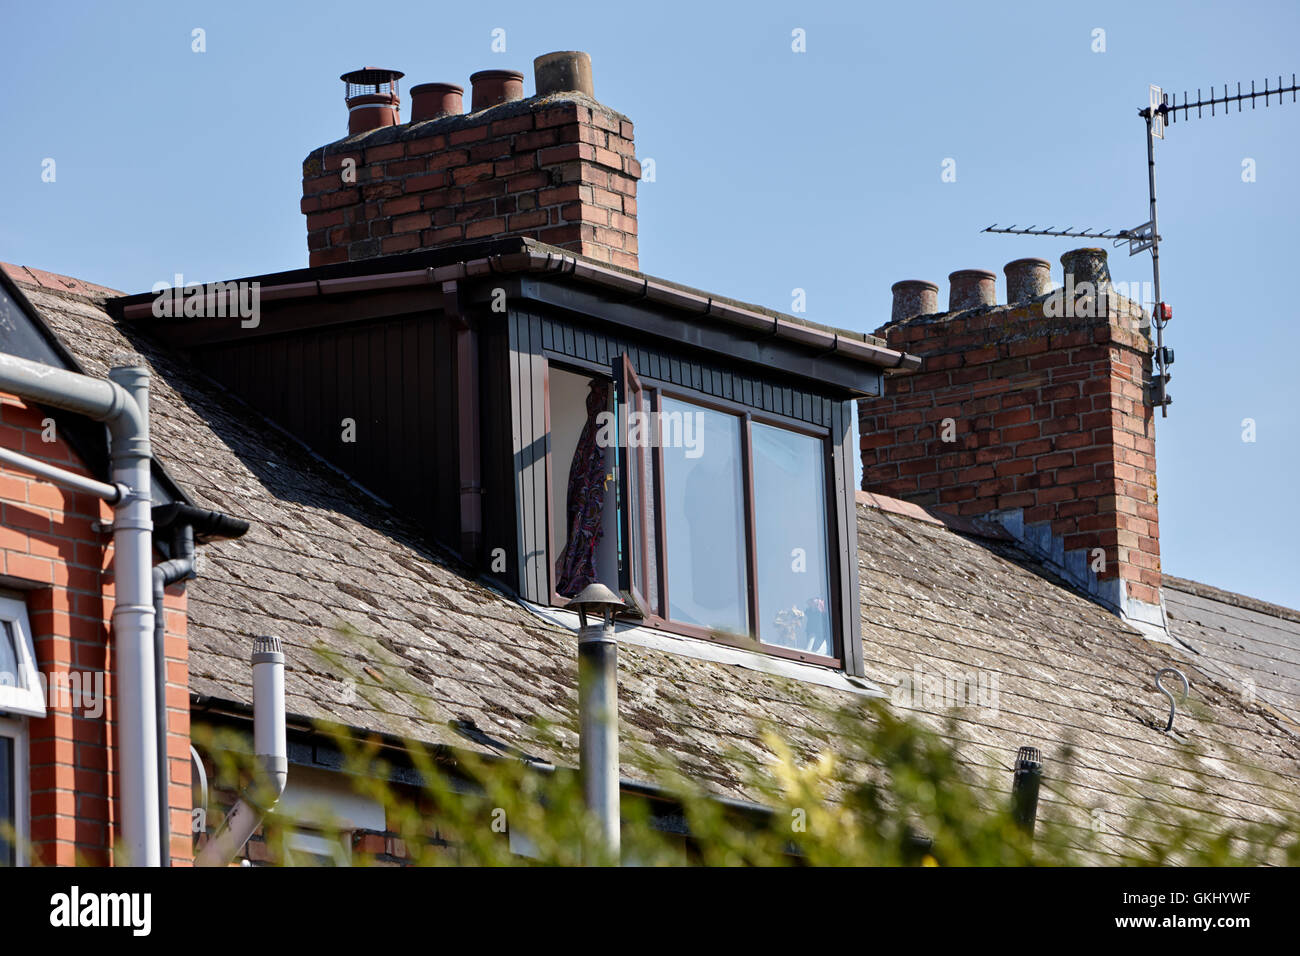 flat roof loft conversion window in a house in the uk - Stock Image